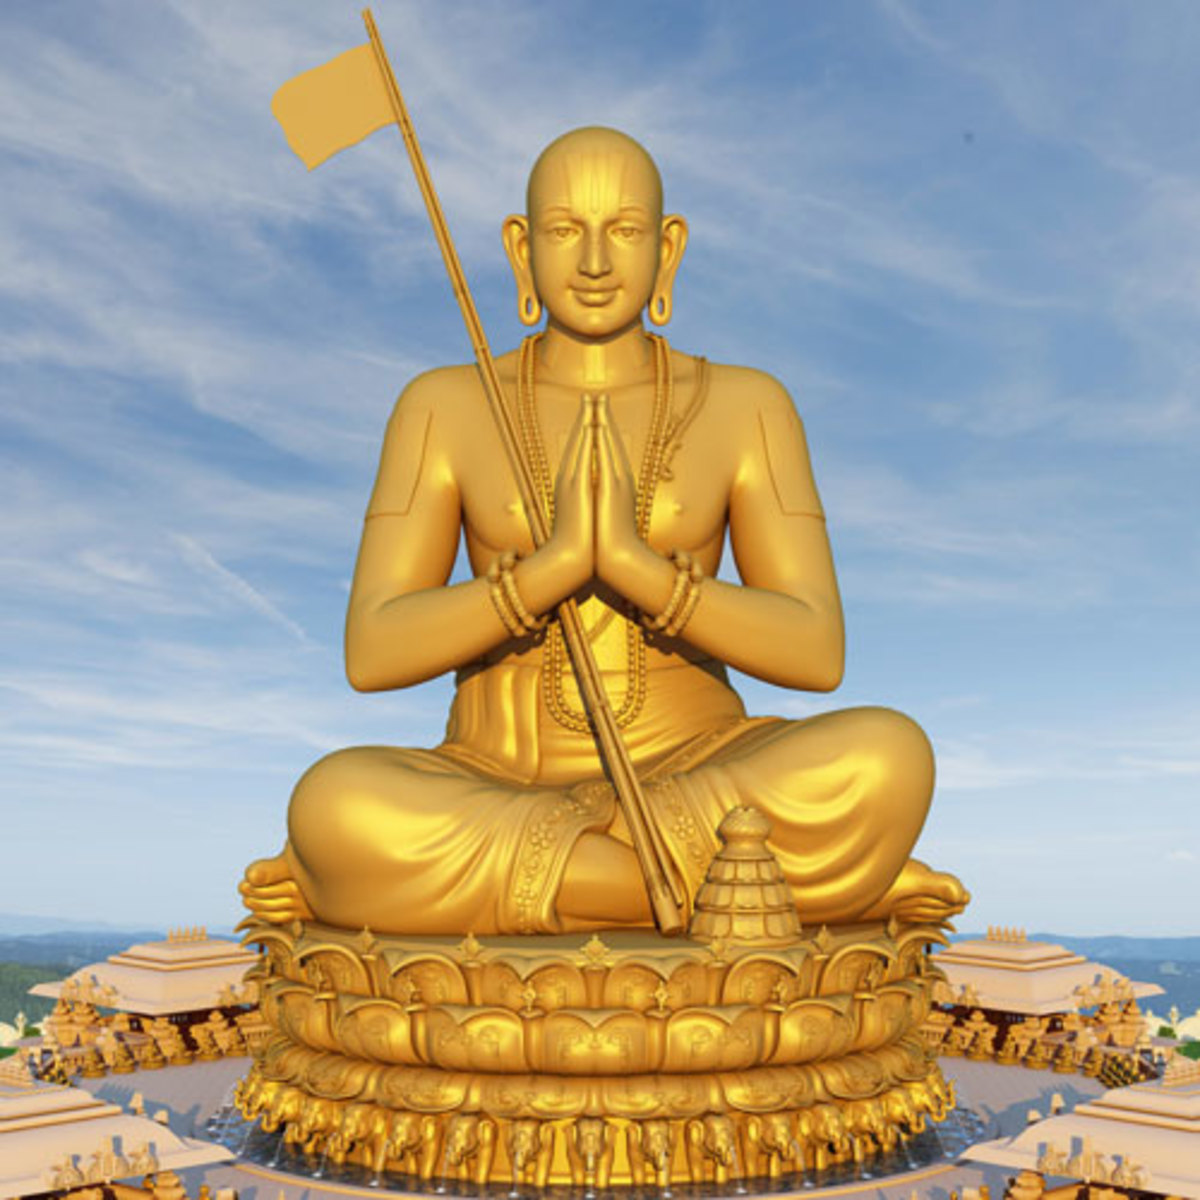 An artist's impression of the statue depicting Sri Ramanujacharya Swamy ji in Dhyan pose.